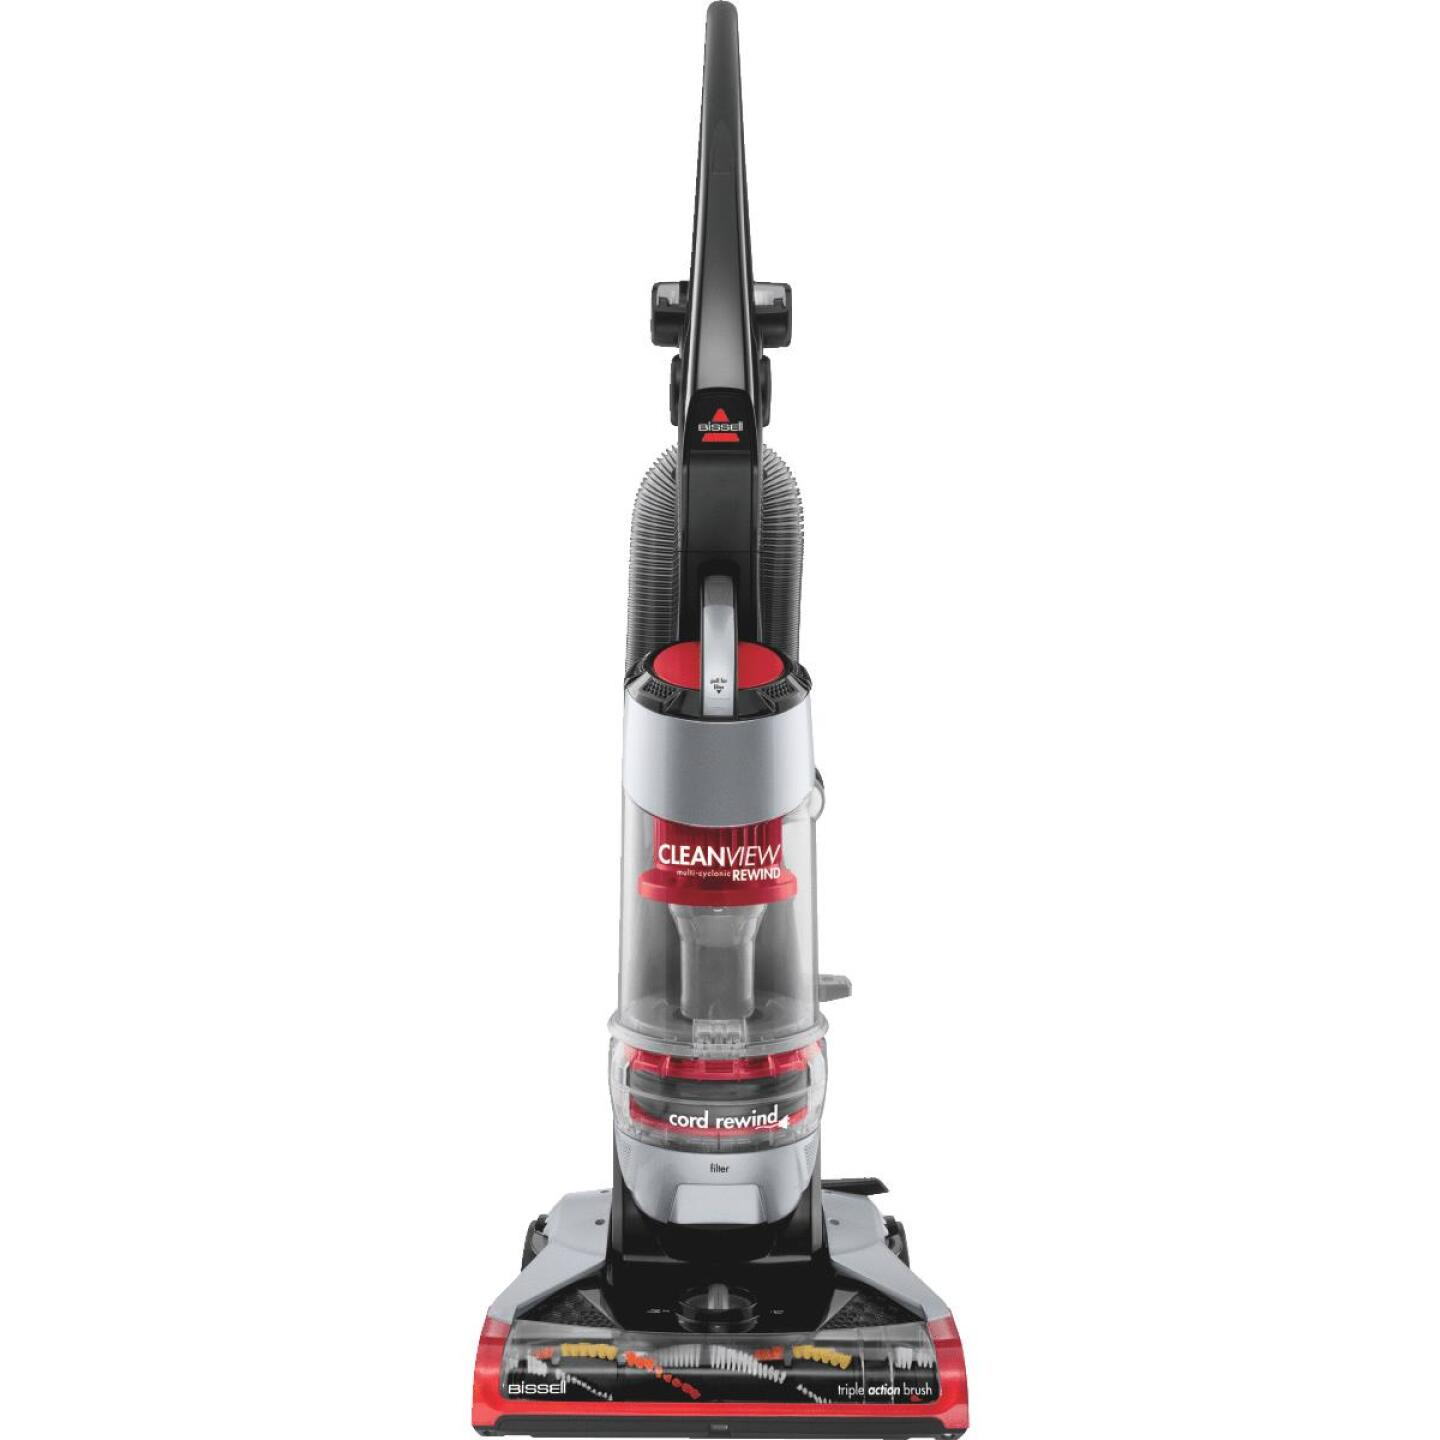 Bissell CleanView Plus Rewind Bagless Upright Vacuum Cleaner Image 1